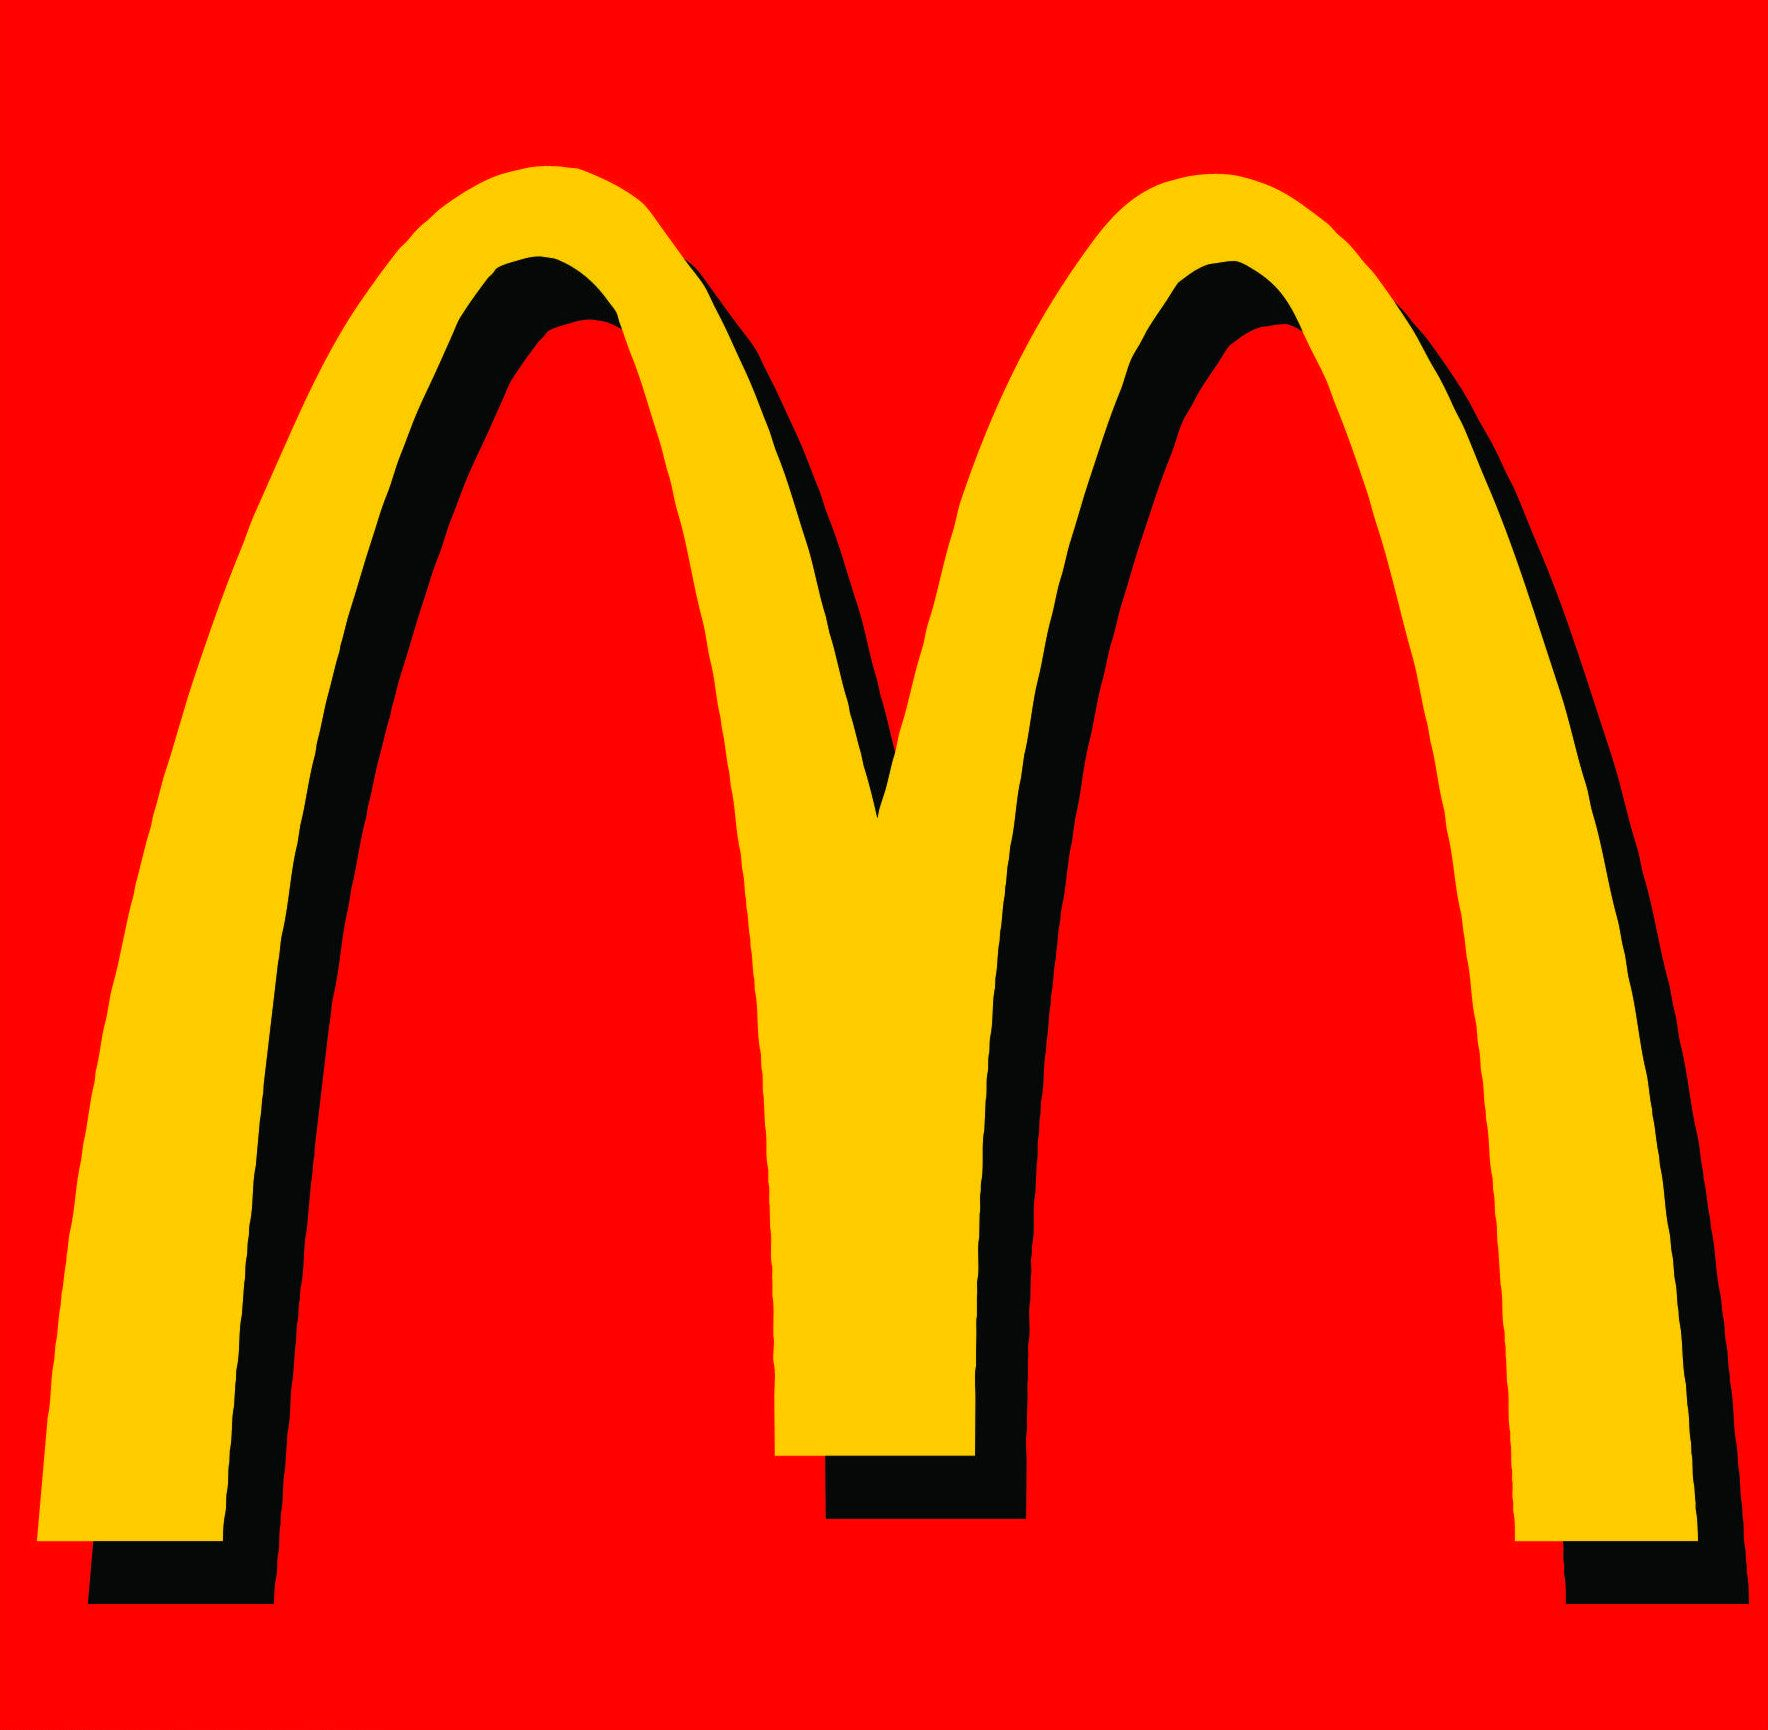 Mcdonalds icon clipart clipart library Published on April 10, 2015 in Advertise ... | Logos in 2019 | Logos ... clipart library